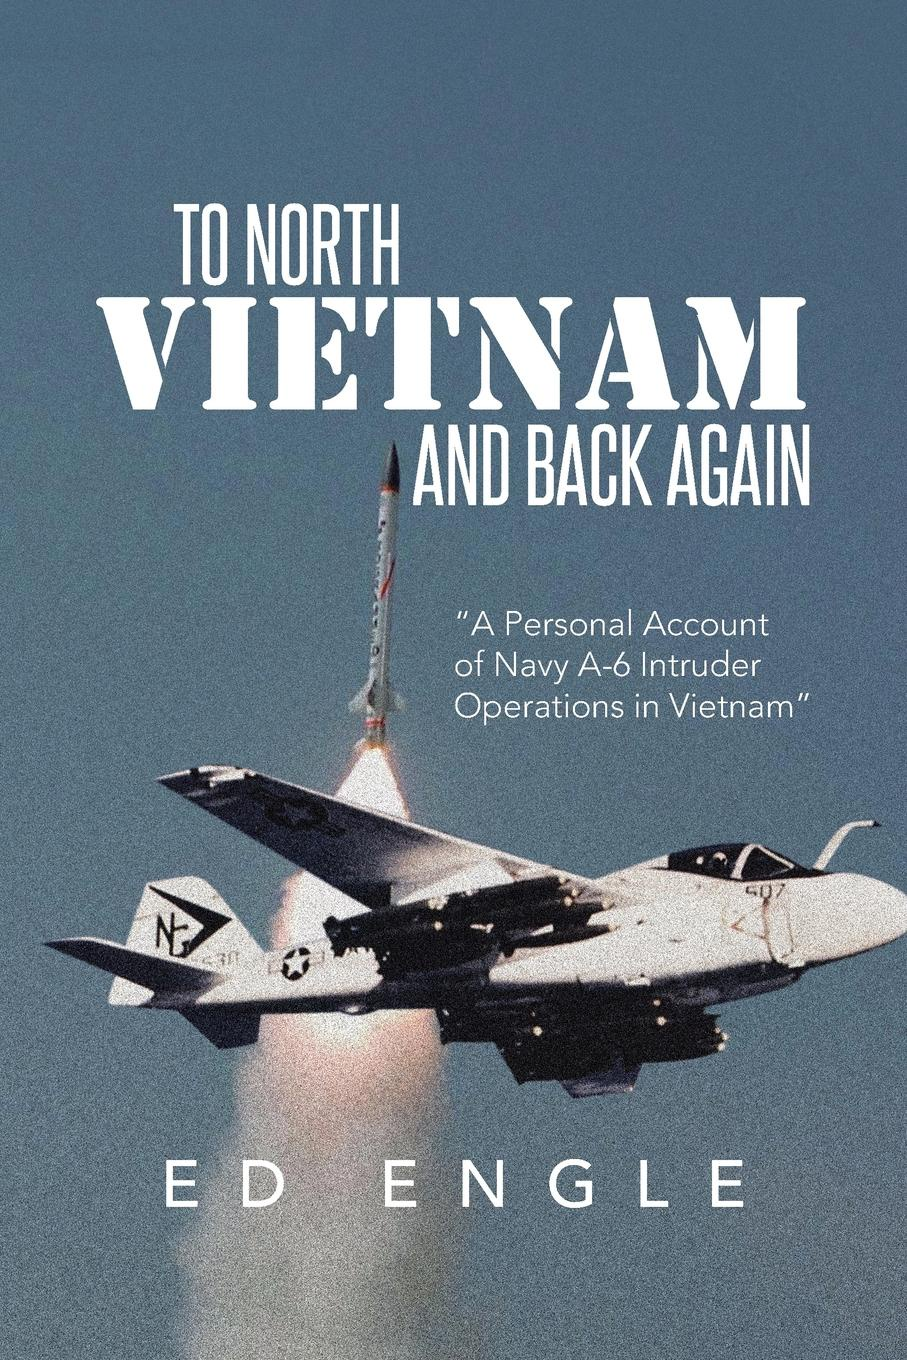 Ed Engle To North Vietnam and Back Again. A Personal Account of Navy A-6 Intruder Operations in Vietnam vietnam